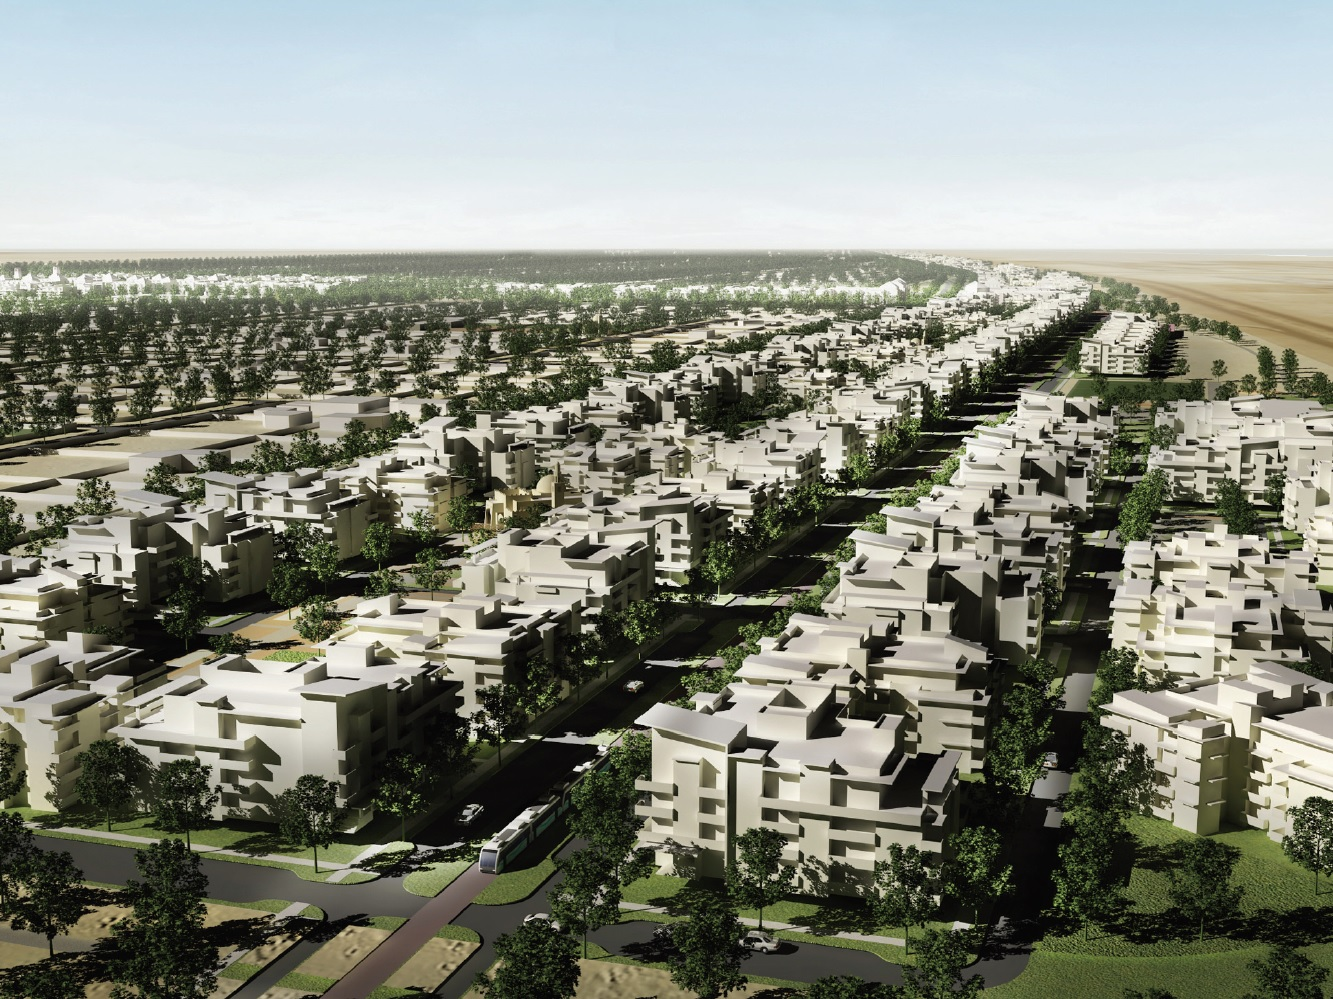 Ajman targets global standards in urban planning – Emirates Business 24|7